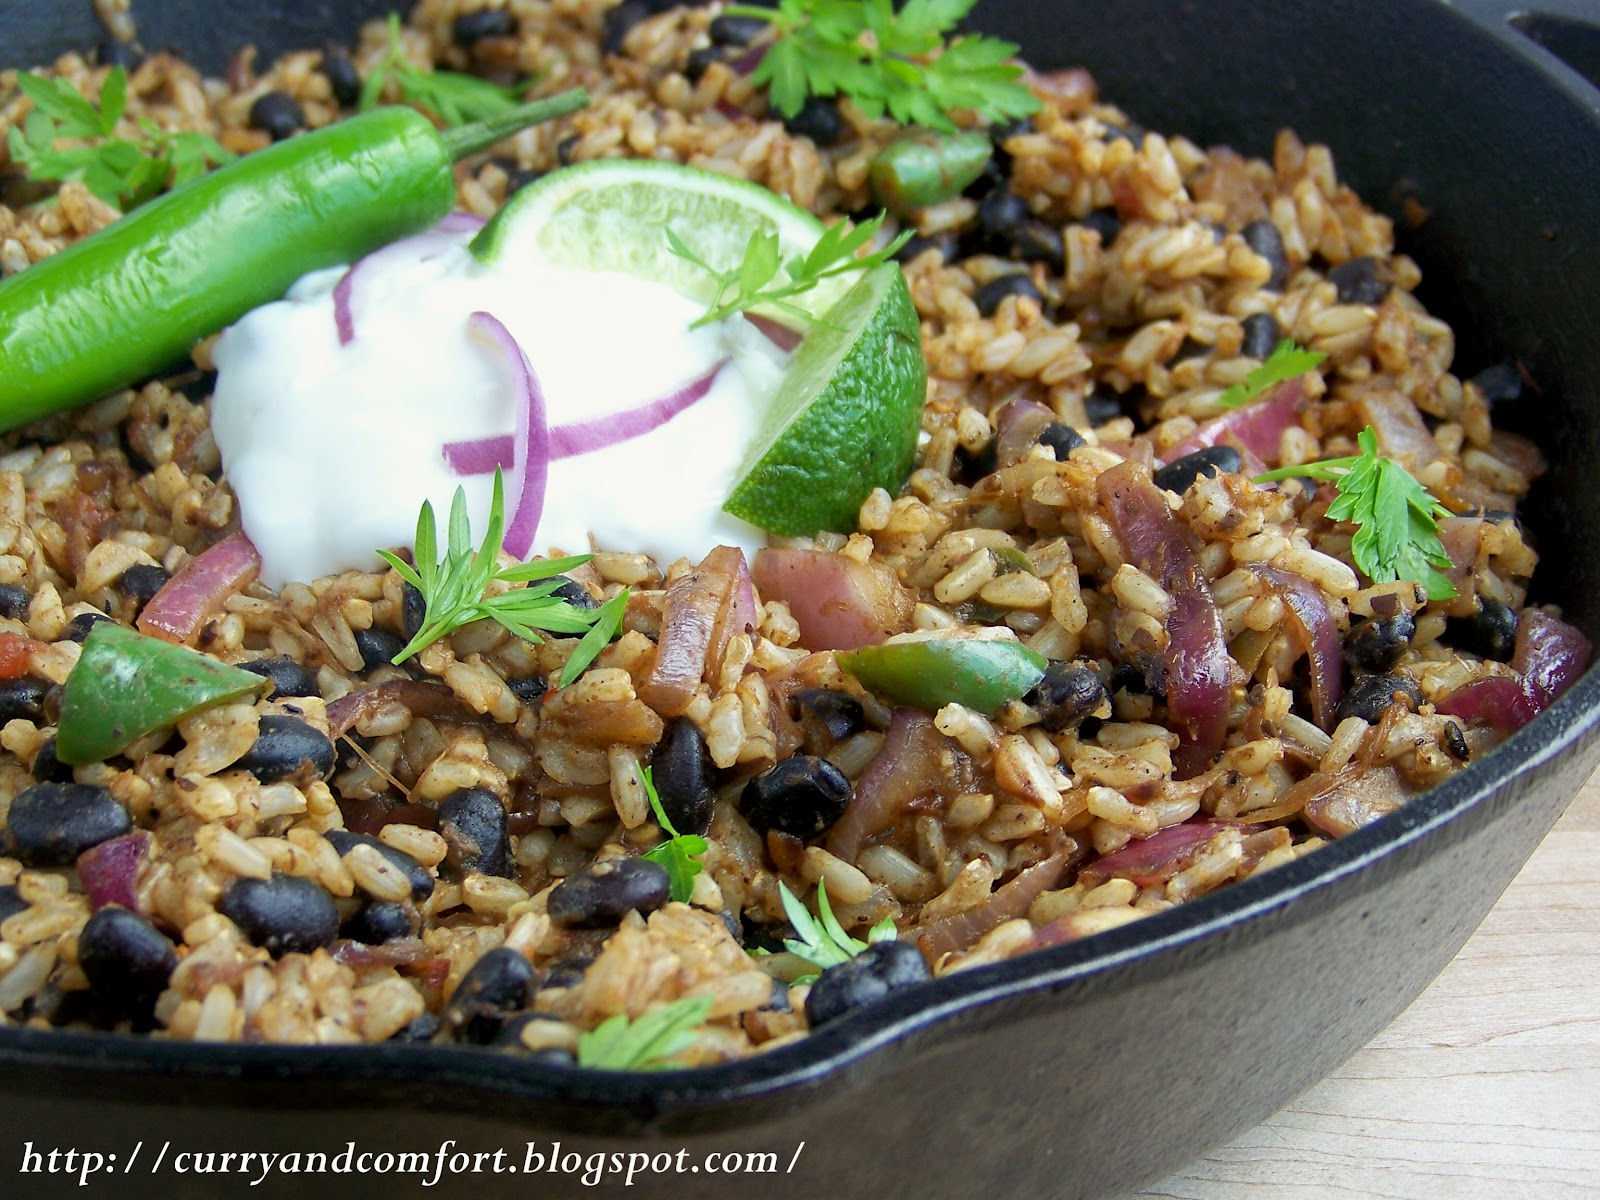 http://organicshift.files.wordpress.com/2014/01/100_4926-rice-and-beans-close-up-best-best.jpg